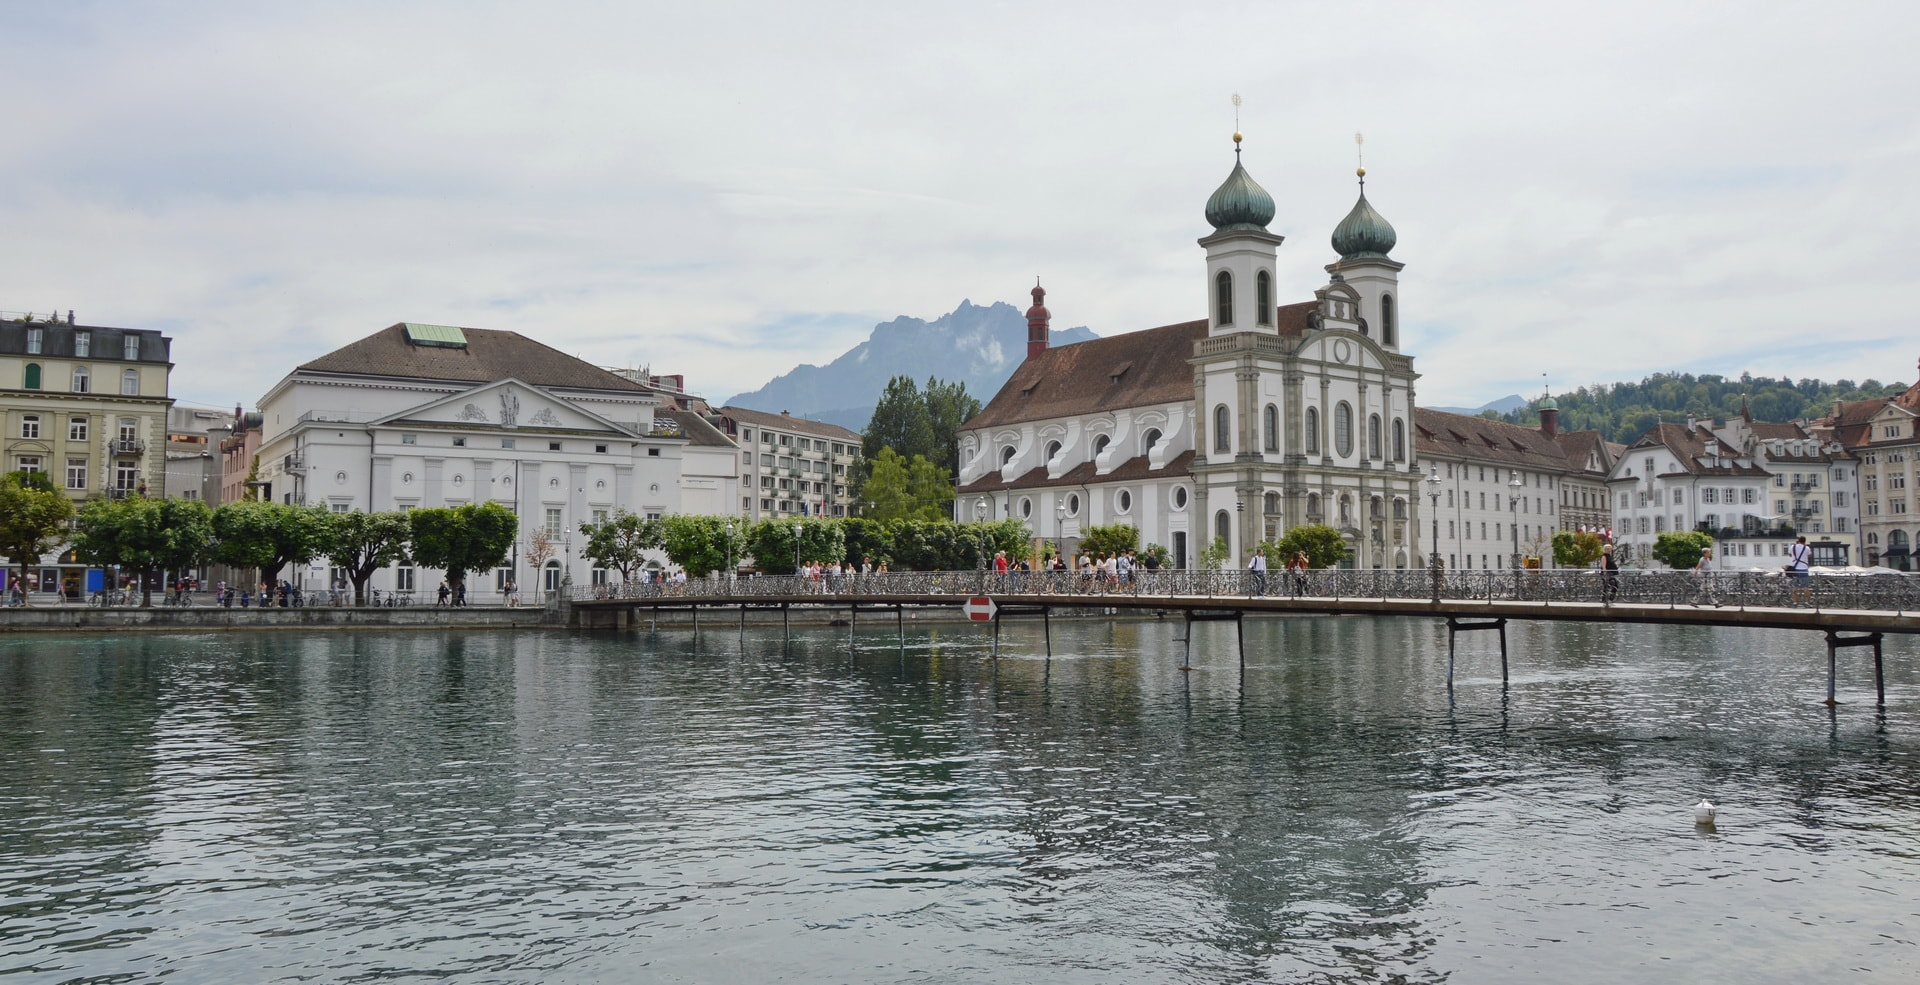 Walking along the Reuss River in Lucerne